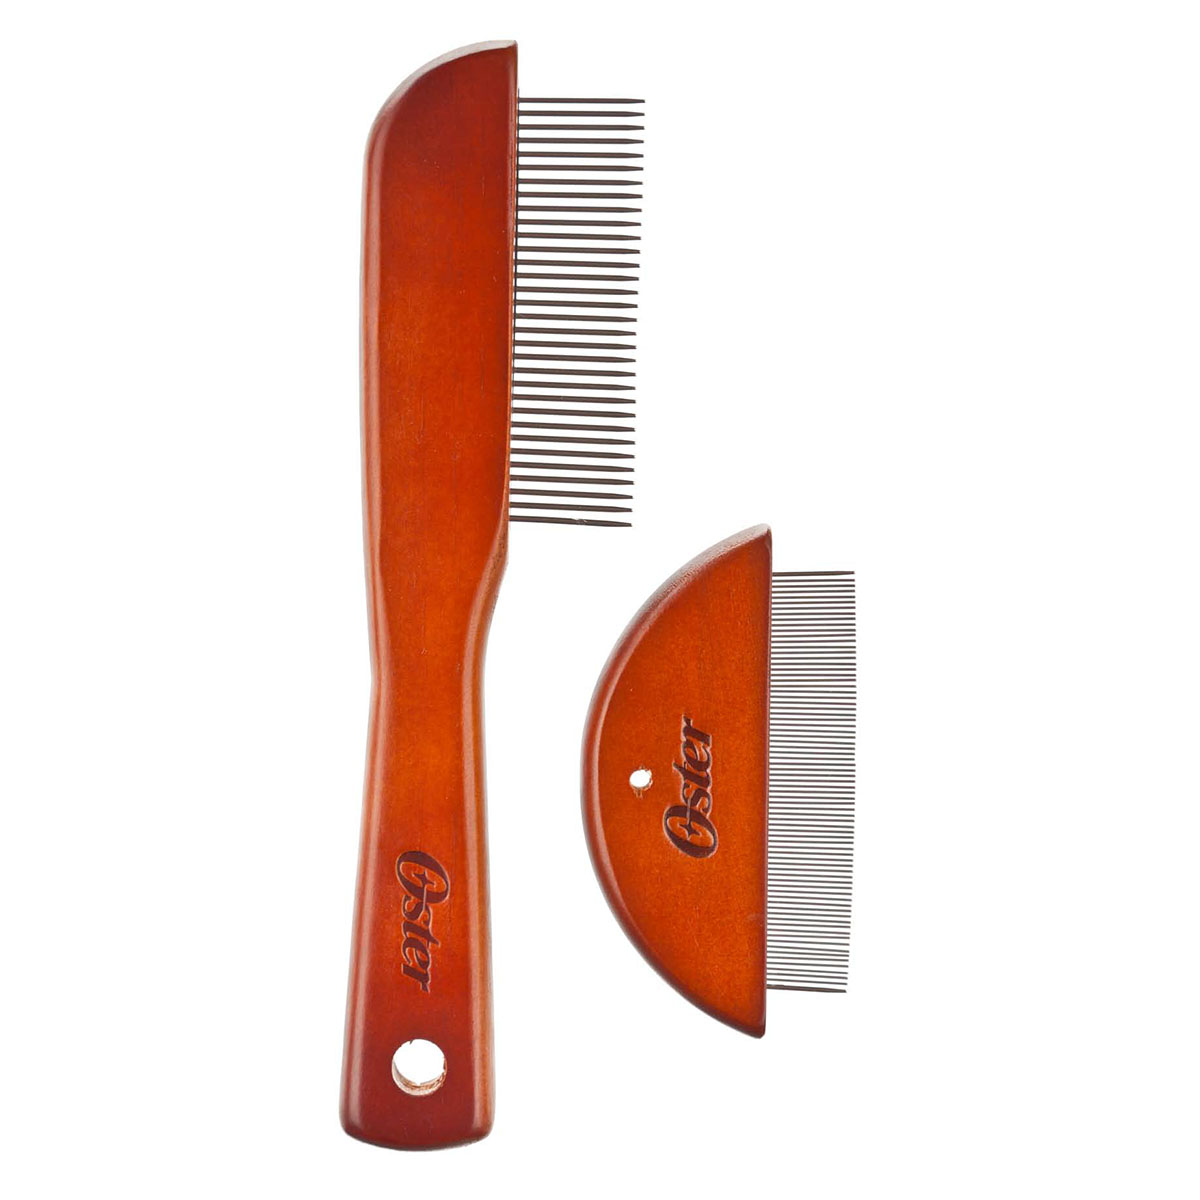 Oster Less Stress Tug-Free Dog Grooming Comb Set (078279-007-000)